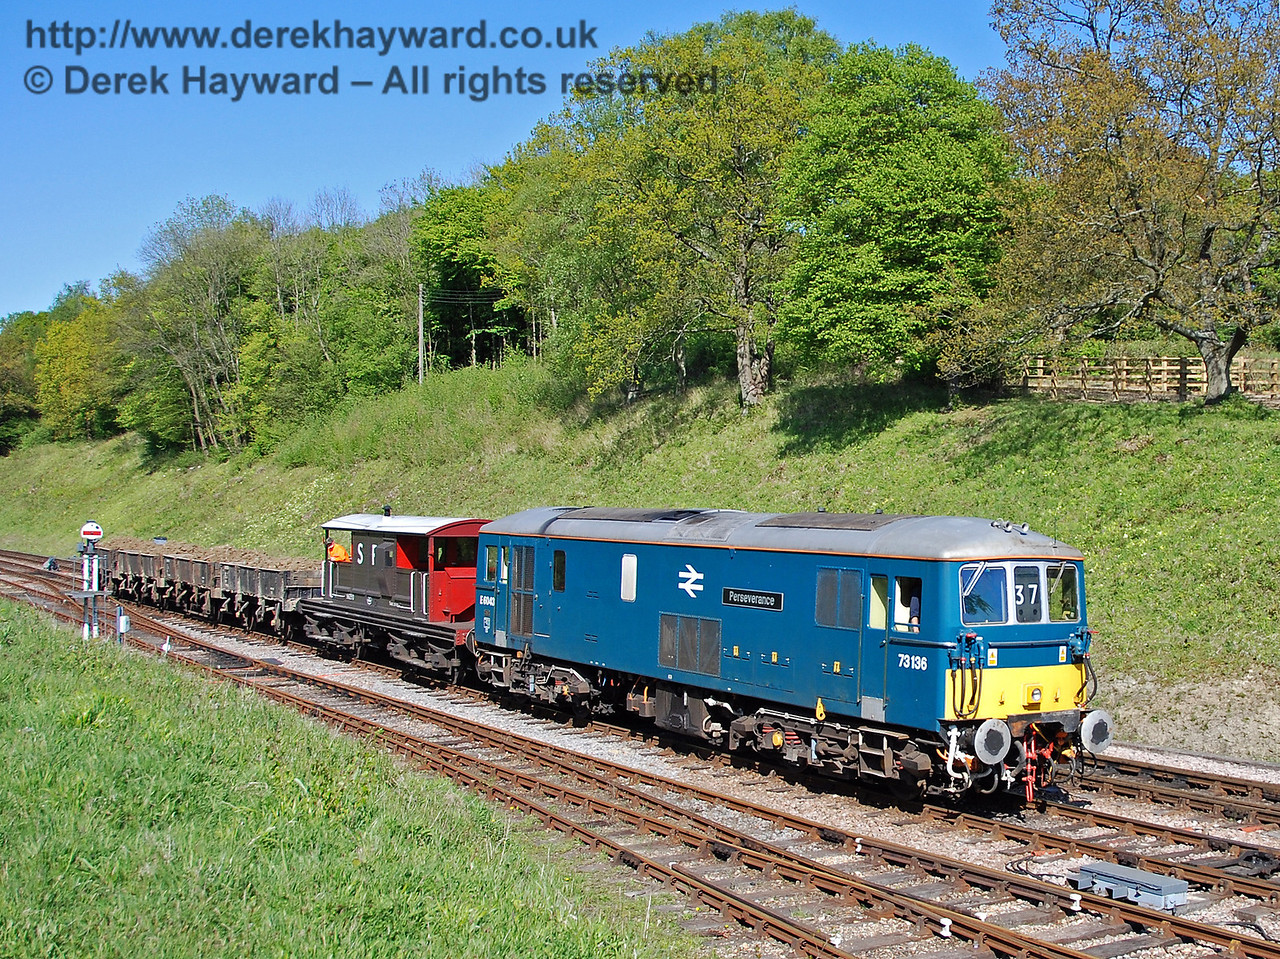 73136 (E6043) arrives at Horsted Keynes with the loaded spoil train. 29.04.2009